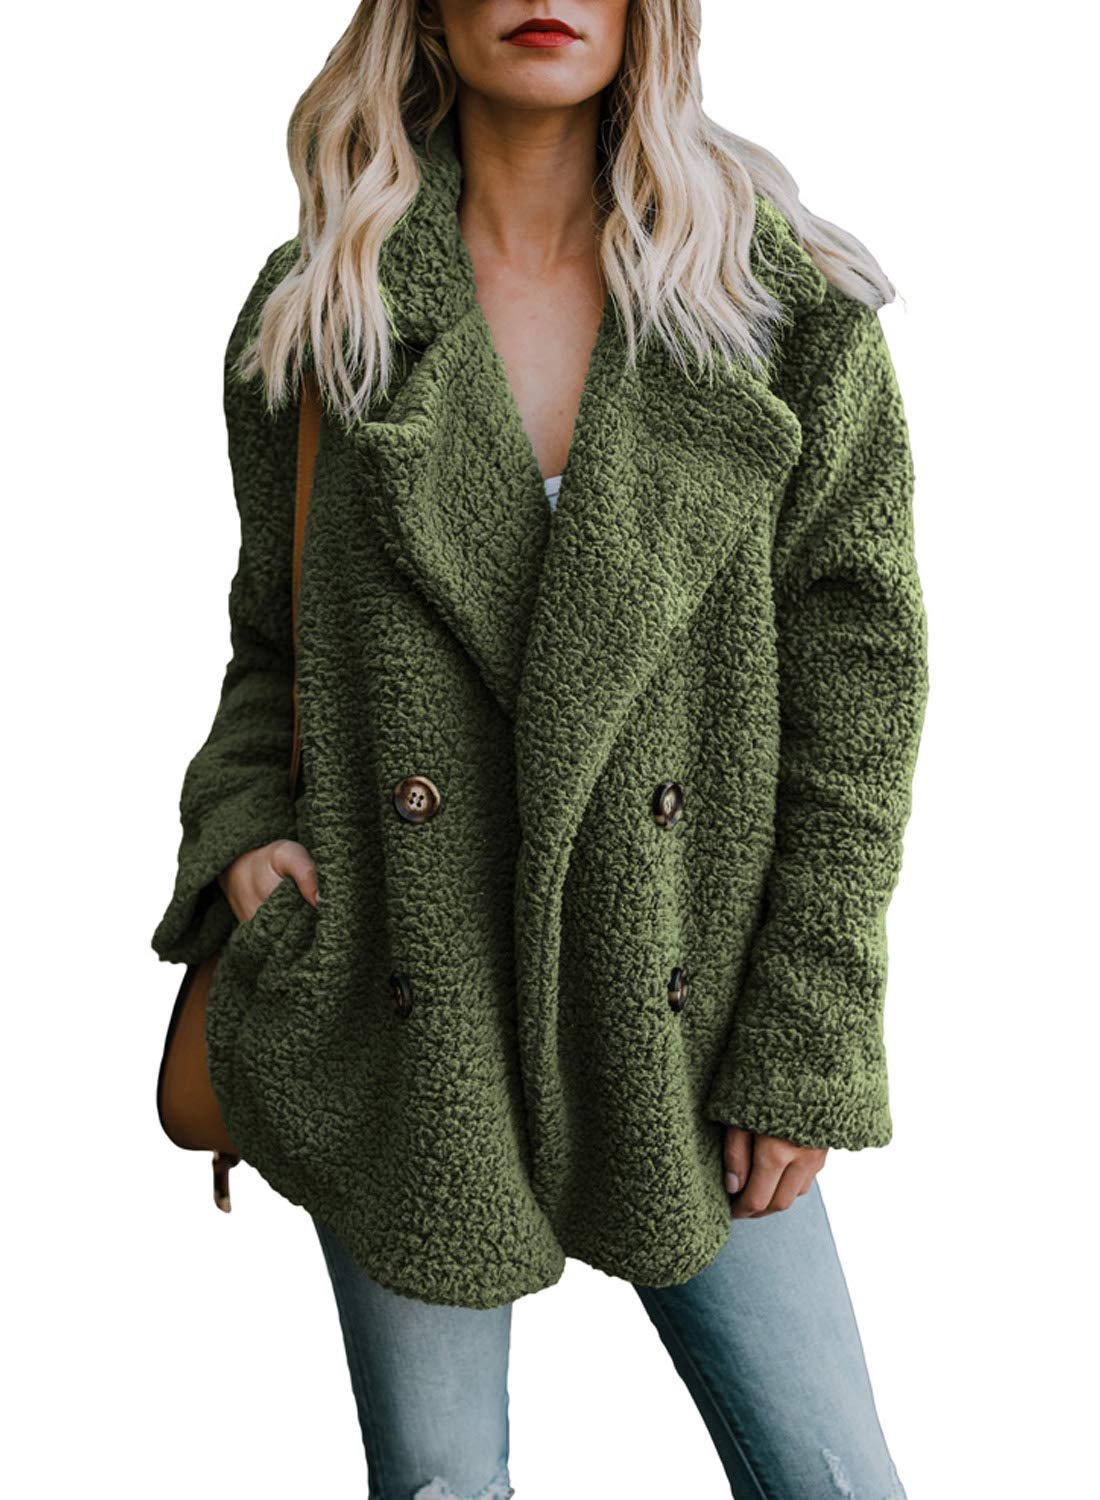 Dokotoo Womens Coats Winter Ladies Cozy Warm Casual Oversized Casual Cardigans Long Sleeve Button Open Front Fuzzy Coat with Pockets Sweaters Fluffy Outerwears Green Large by Dokotoo